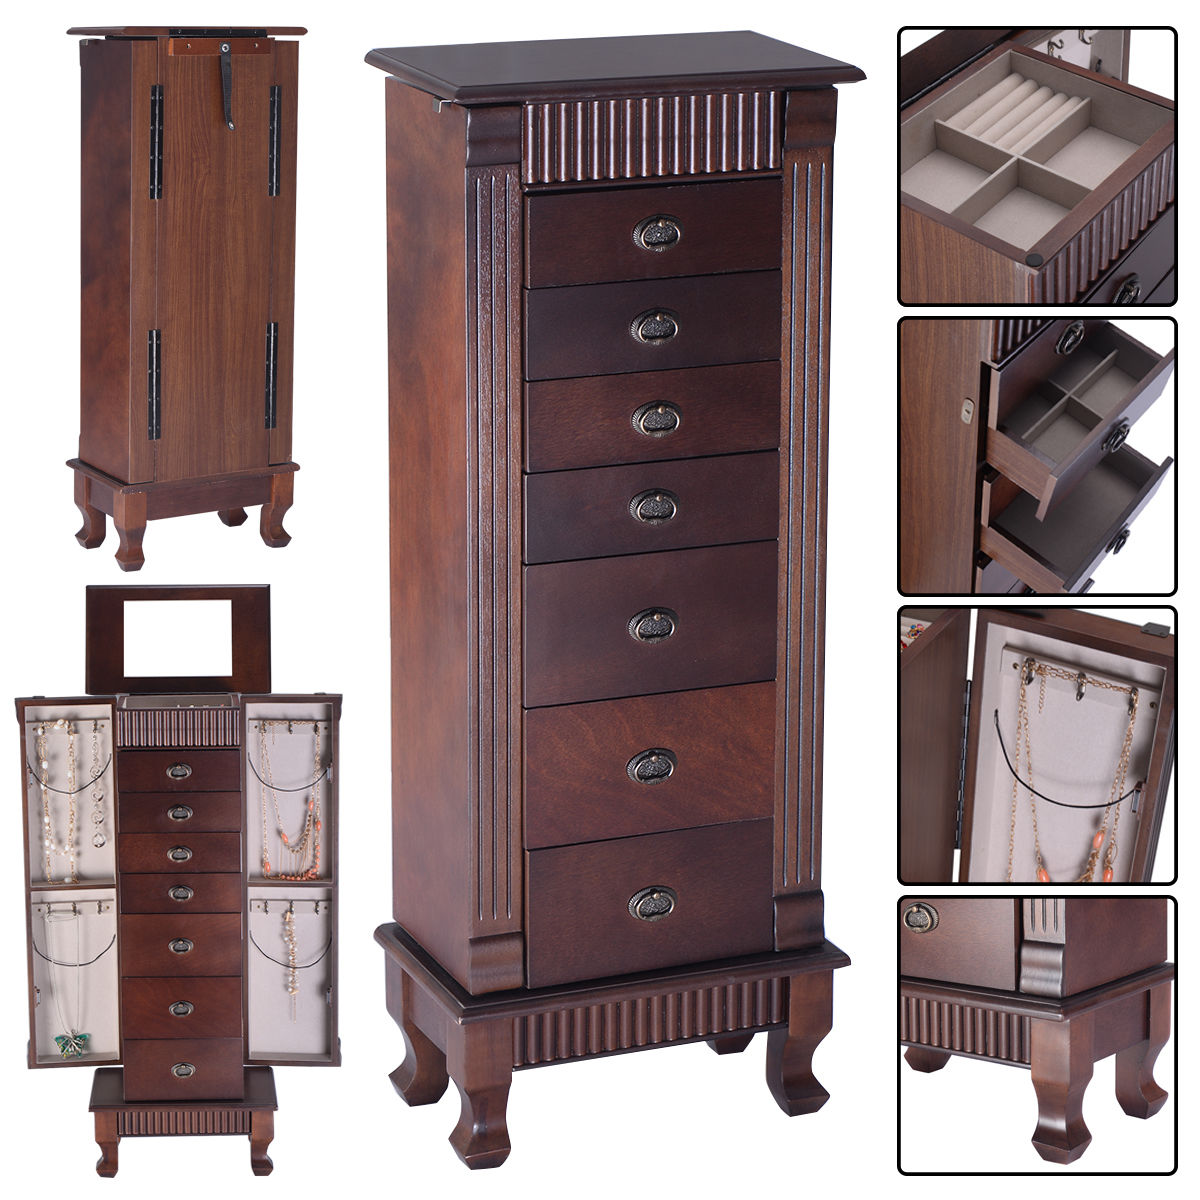 Jewelry Armoire With Beige Lining  Mirror and Swing Out Doors  Black     Jewelry Armoire With Beige Lining  Mirror and Swing Out Doors  Black    Walmart com